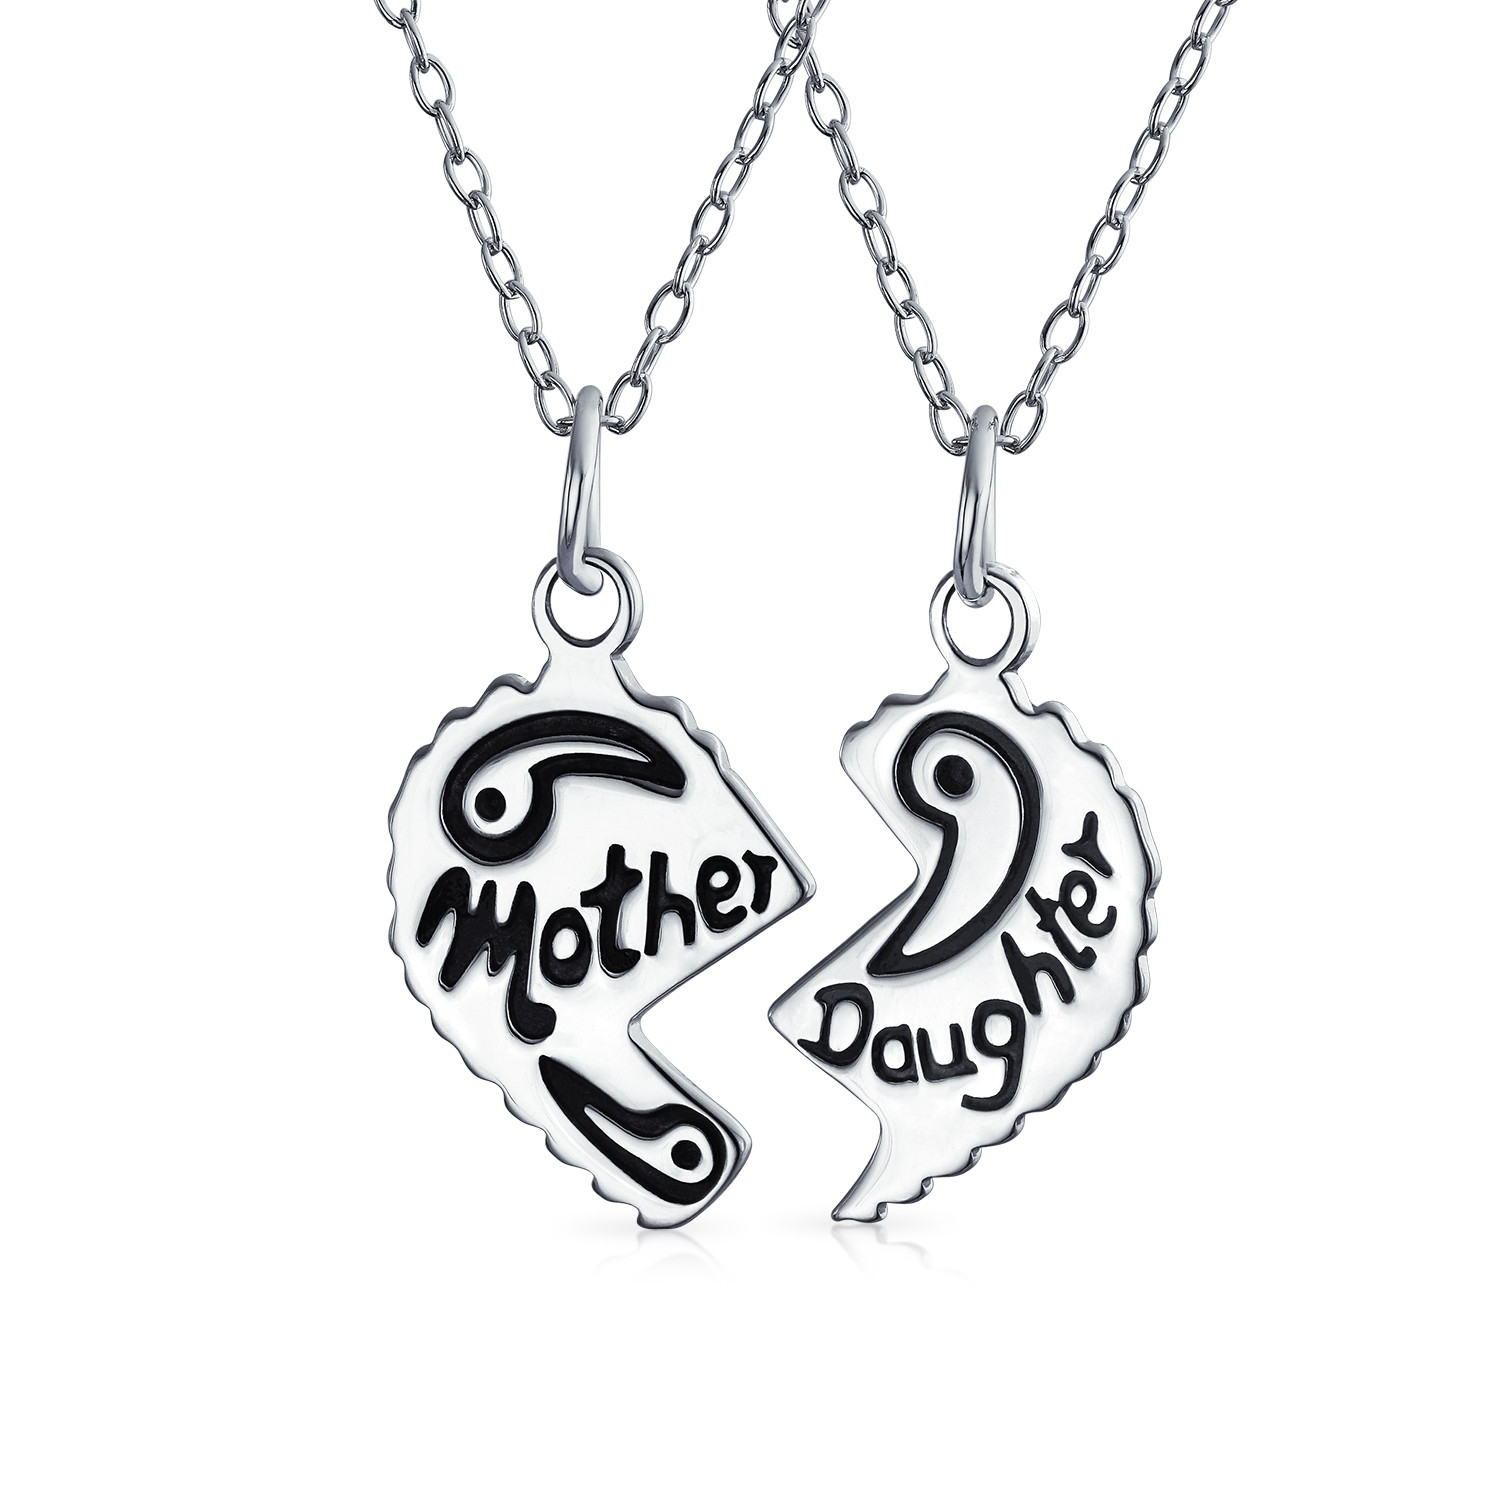 mothpd motherhood p necklace htm